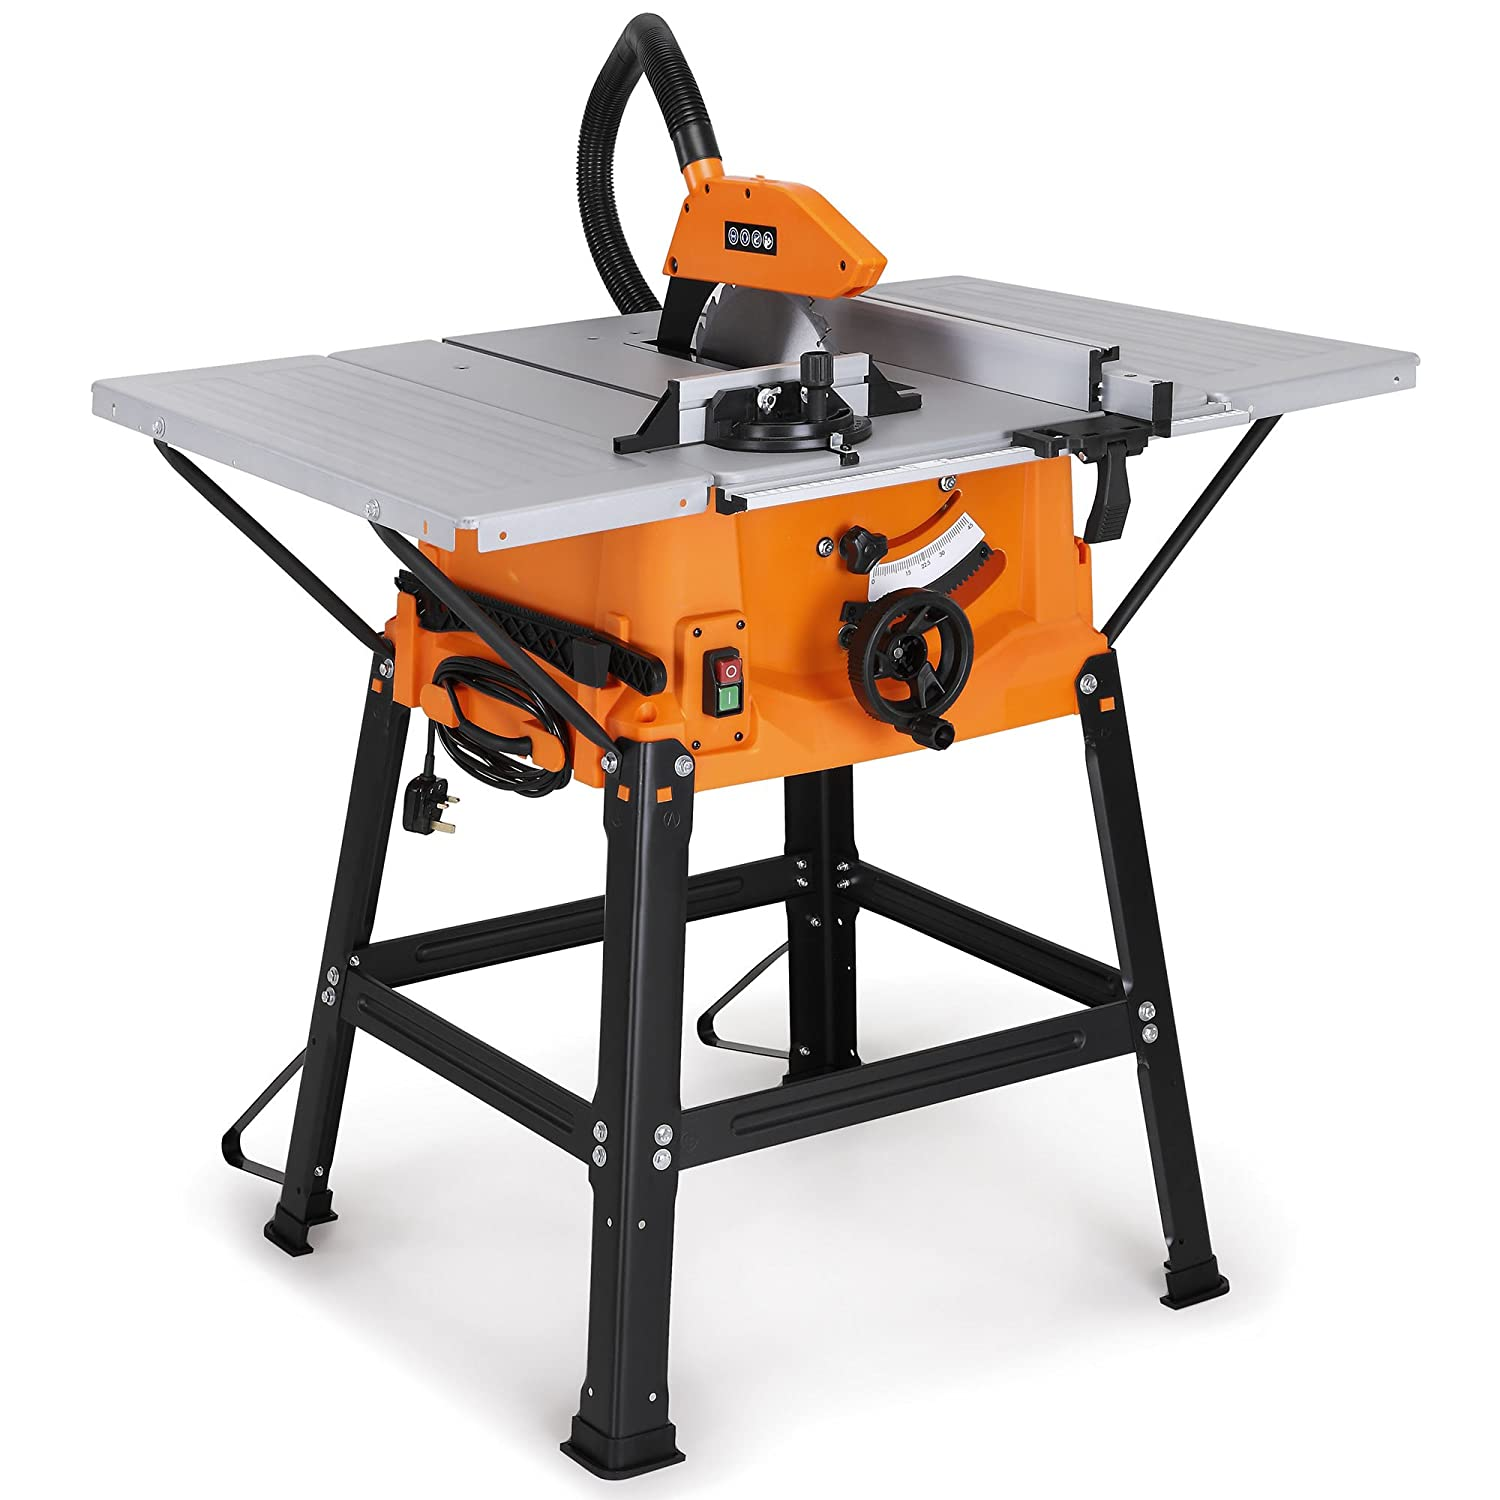 Vonhaus 1800w 10 250mm Table Saw With 5500rpm Underframe Wiring For 220v Circular Mitre Function High Spec Attachable Sides Make Longitudinal Angle